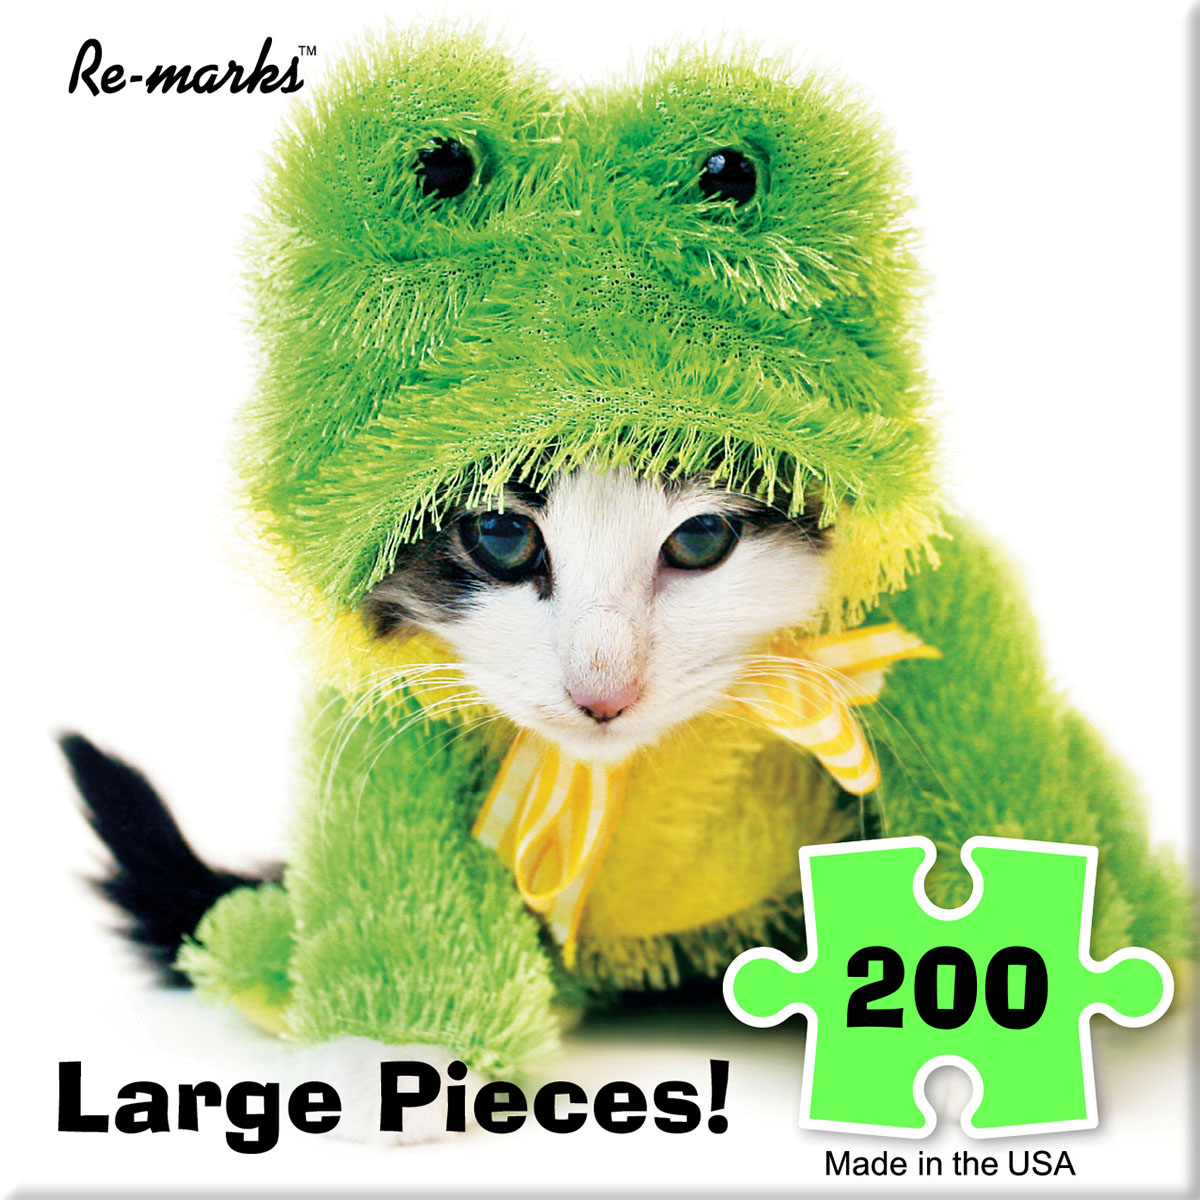 Kit Frog - Scratch and Dent Cats Jigsaw Puzzle